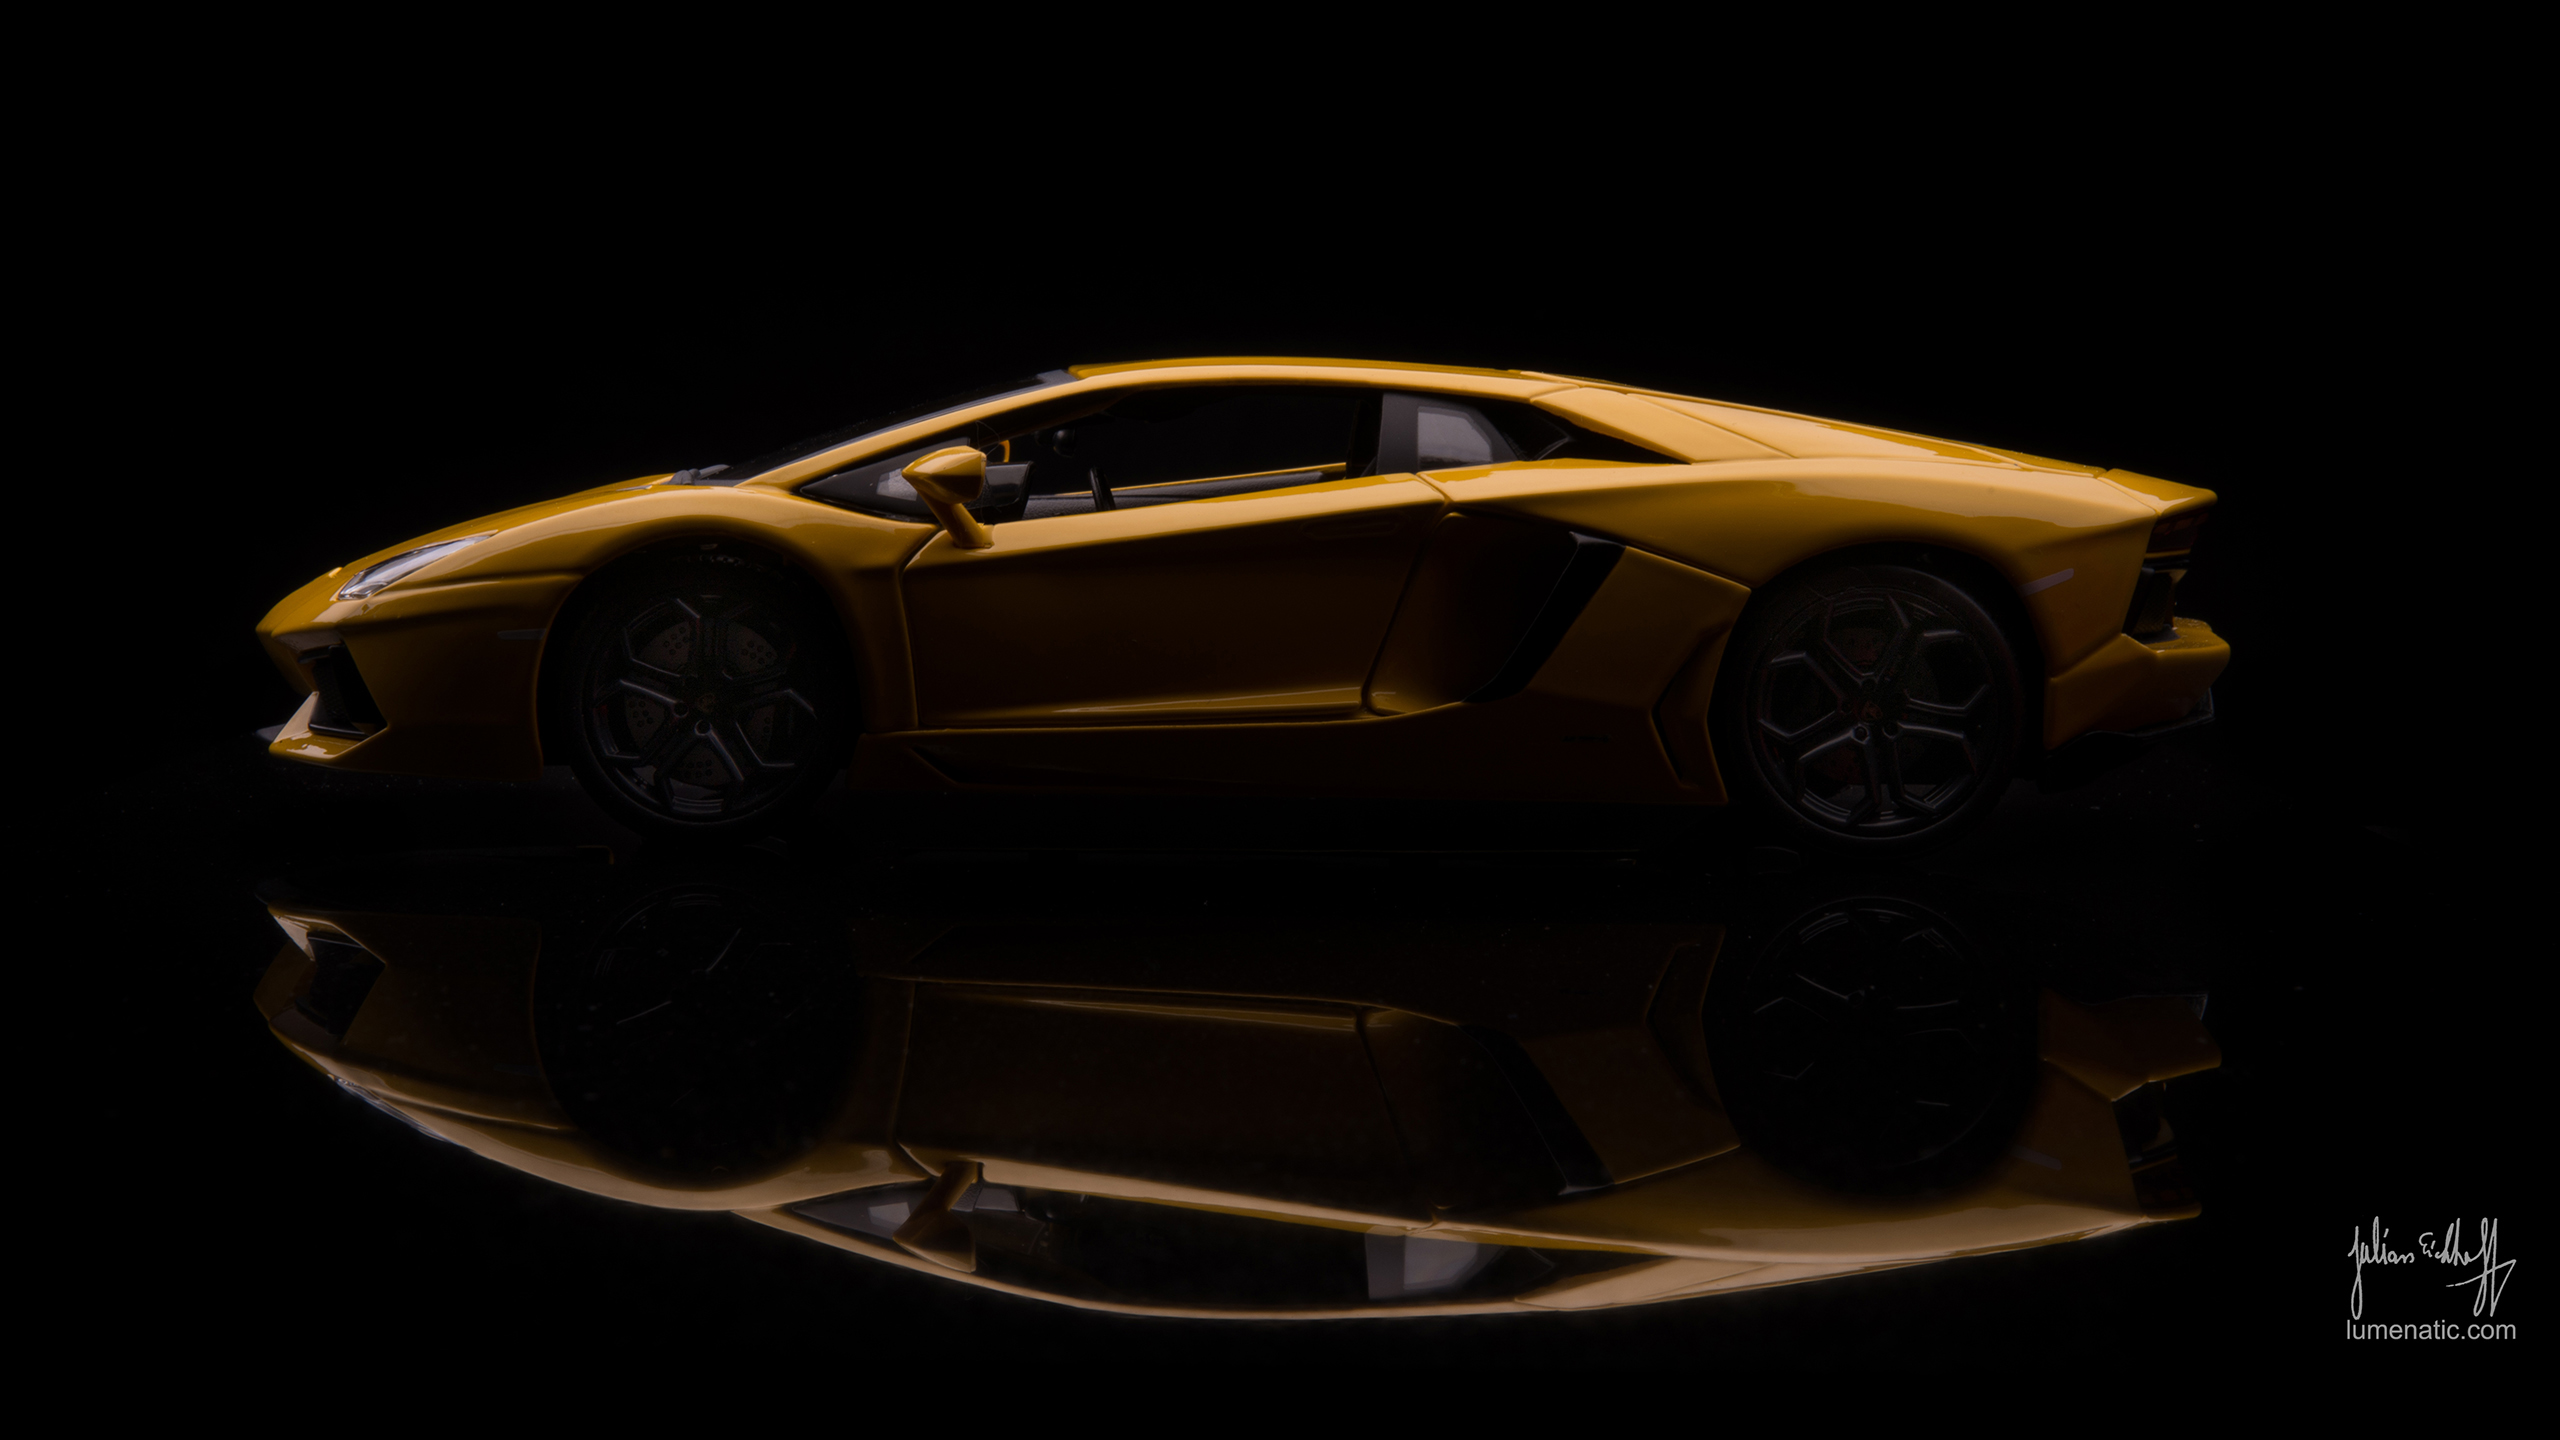 Gold Car Wallpapers: [43+] 2560 X 1440 Wallpaper On WallpaperSafari